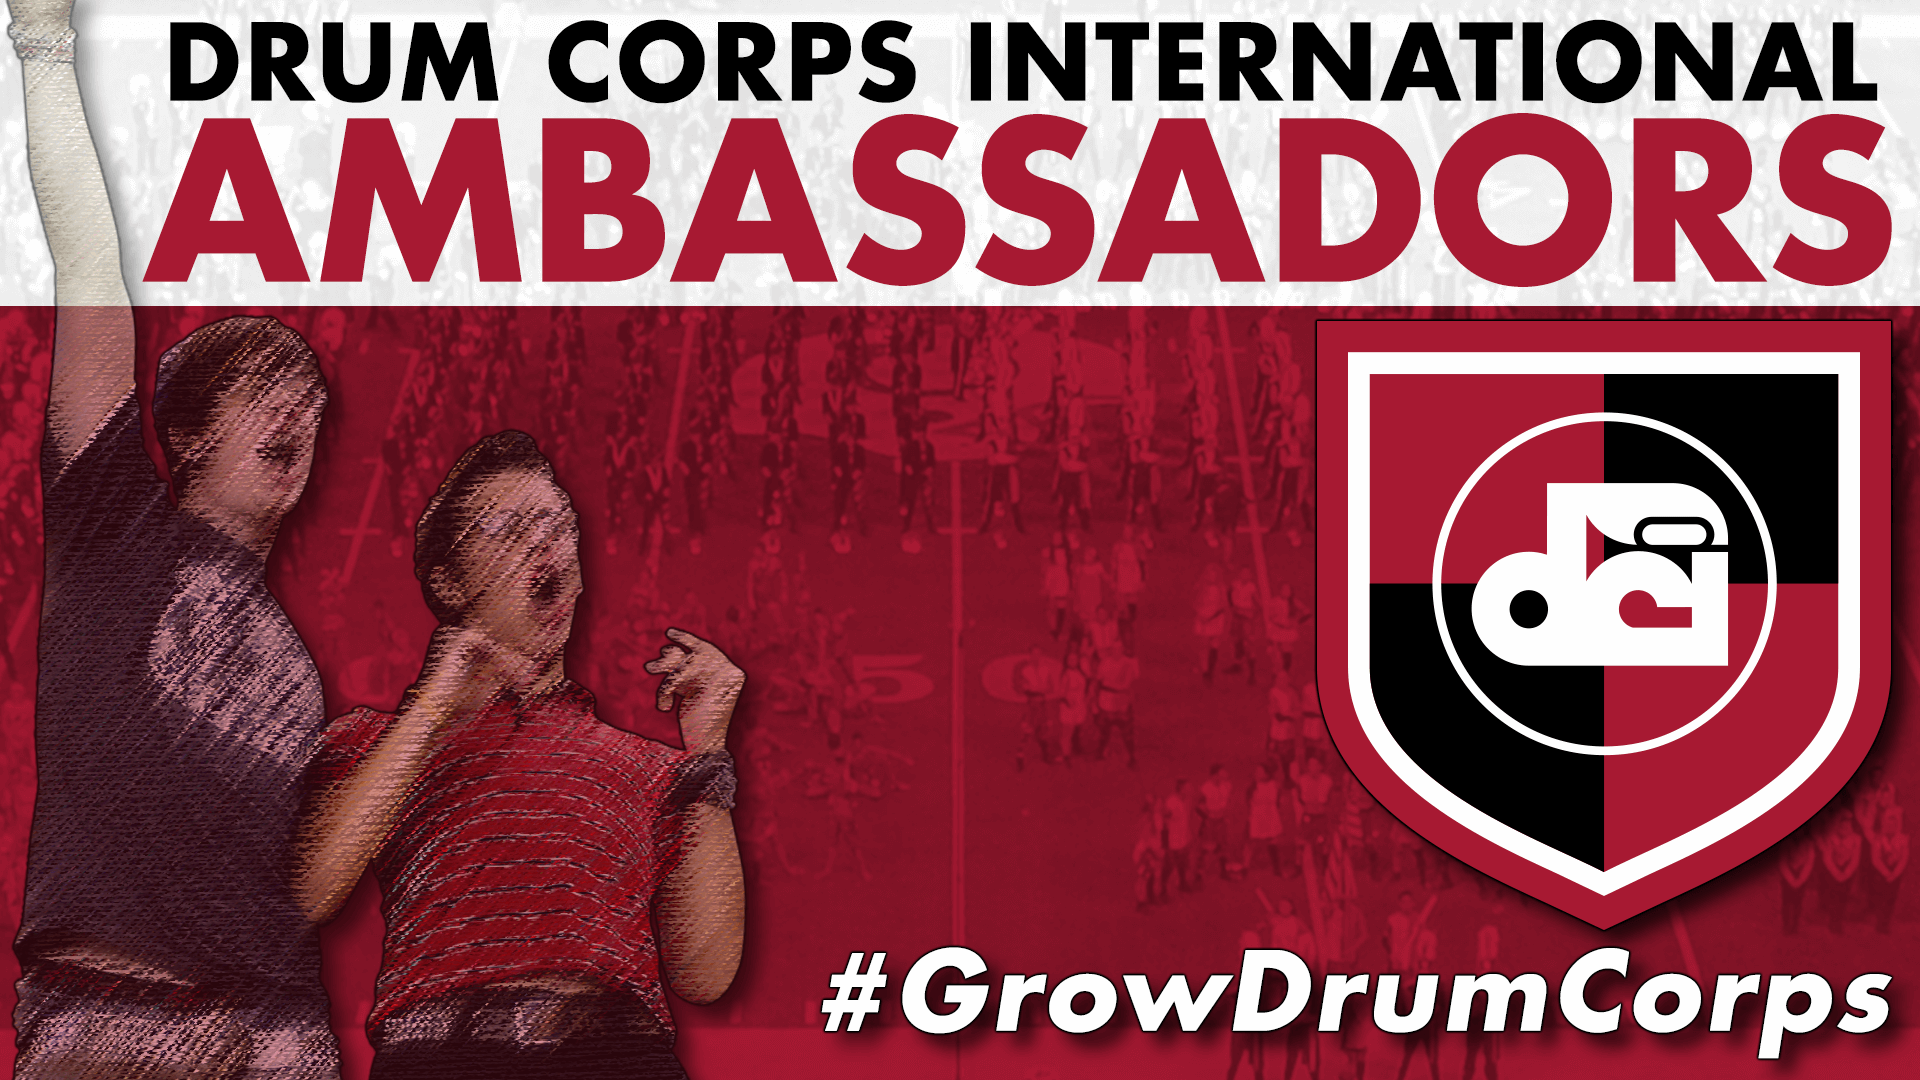 Drum Corps International Ambassadors